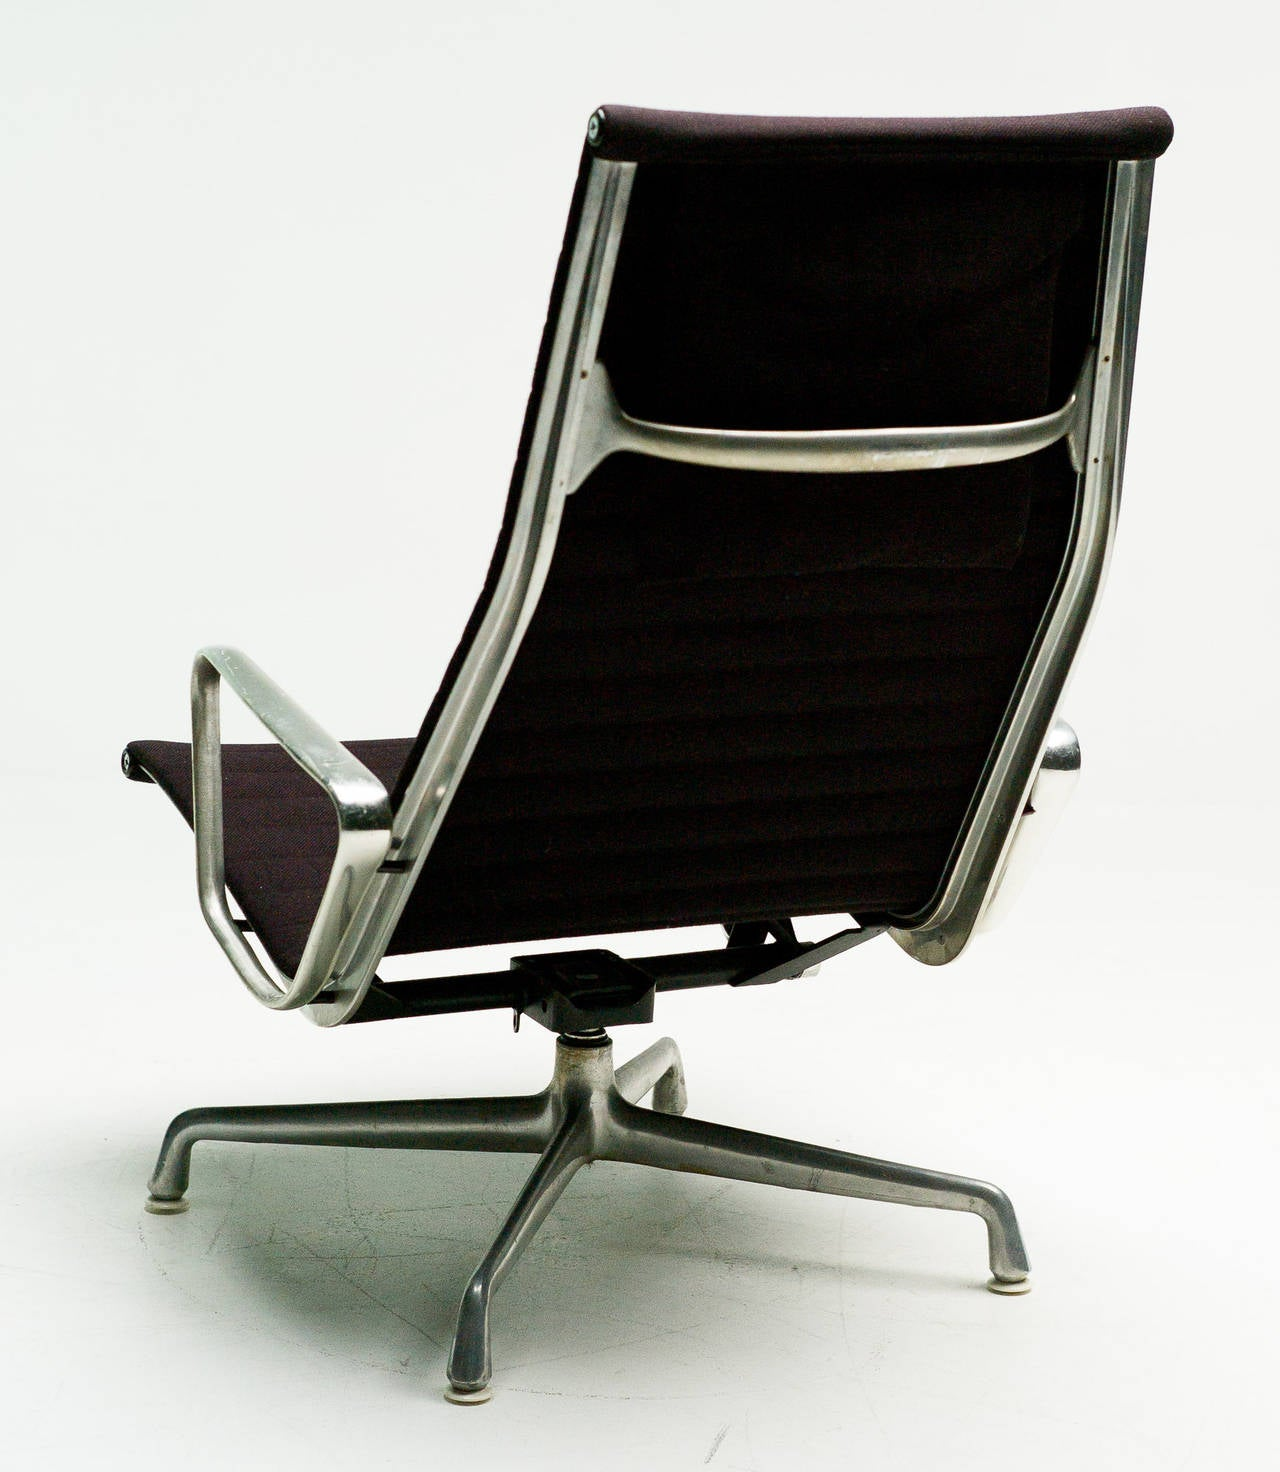 charles eames ea124 lounge chair by herman miller for sale. Black Bedroom Furniture Sets. Home Design Ideas